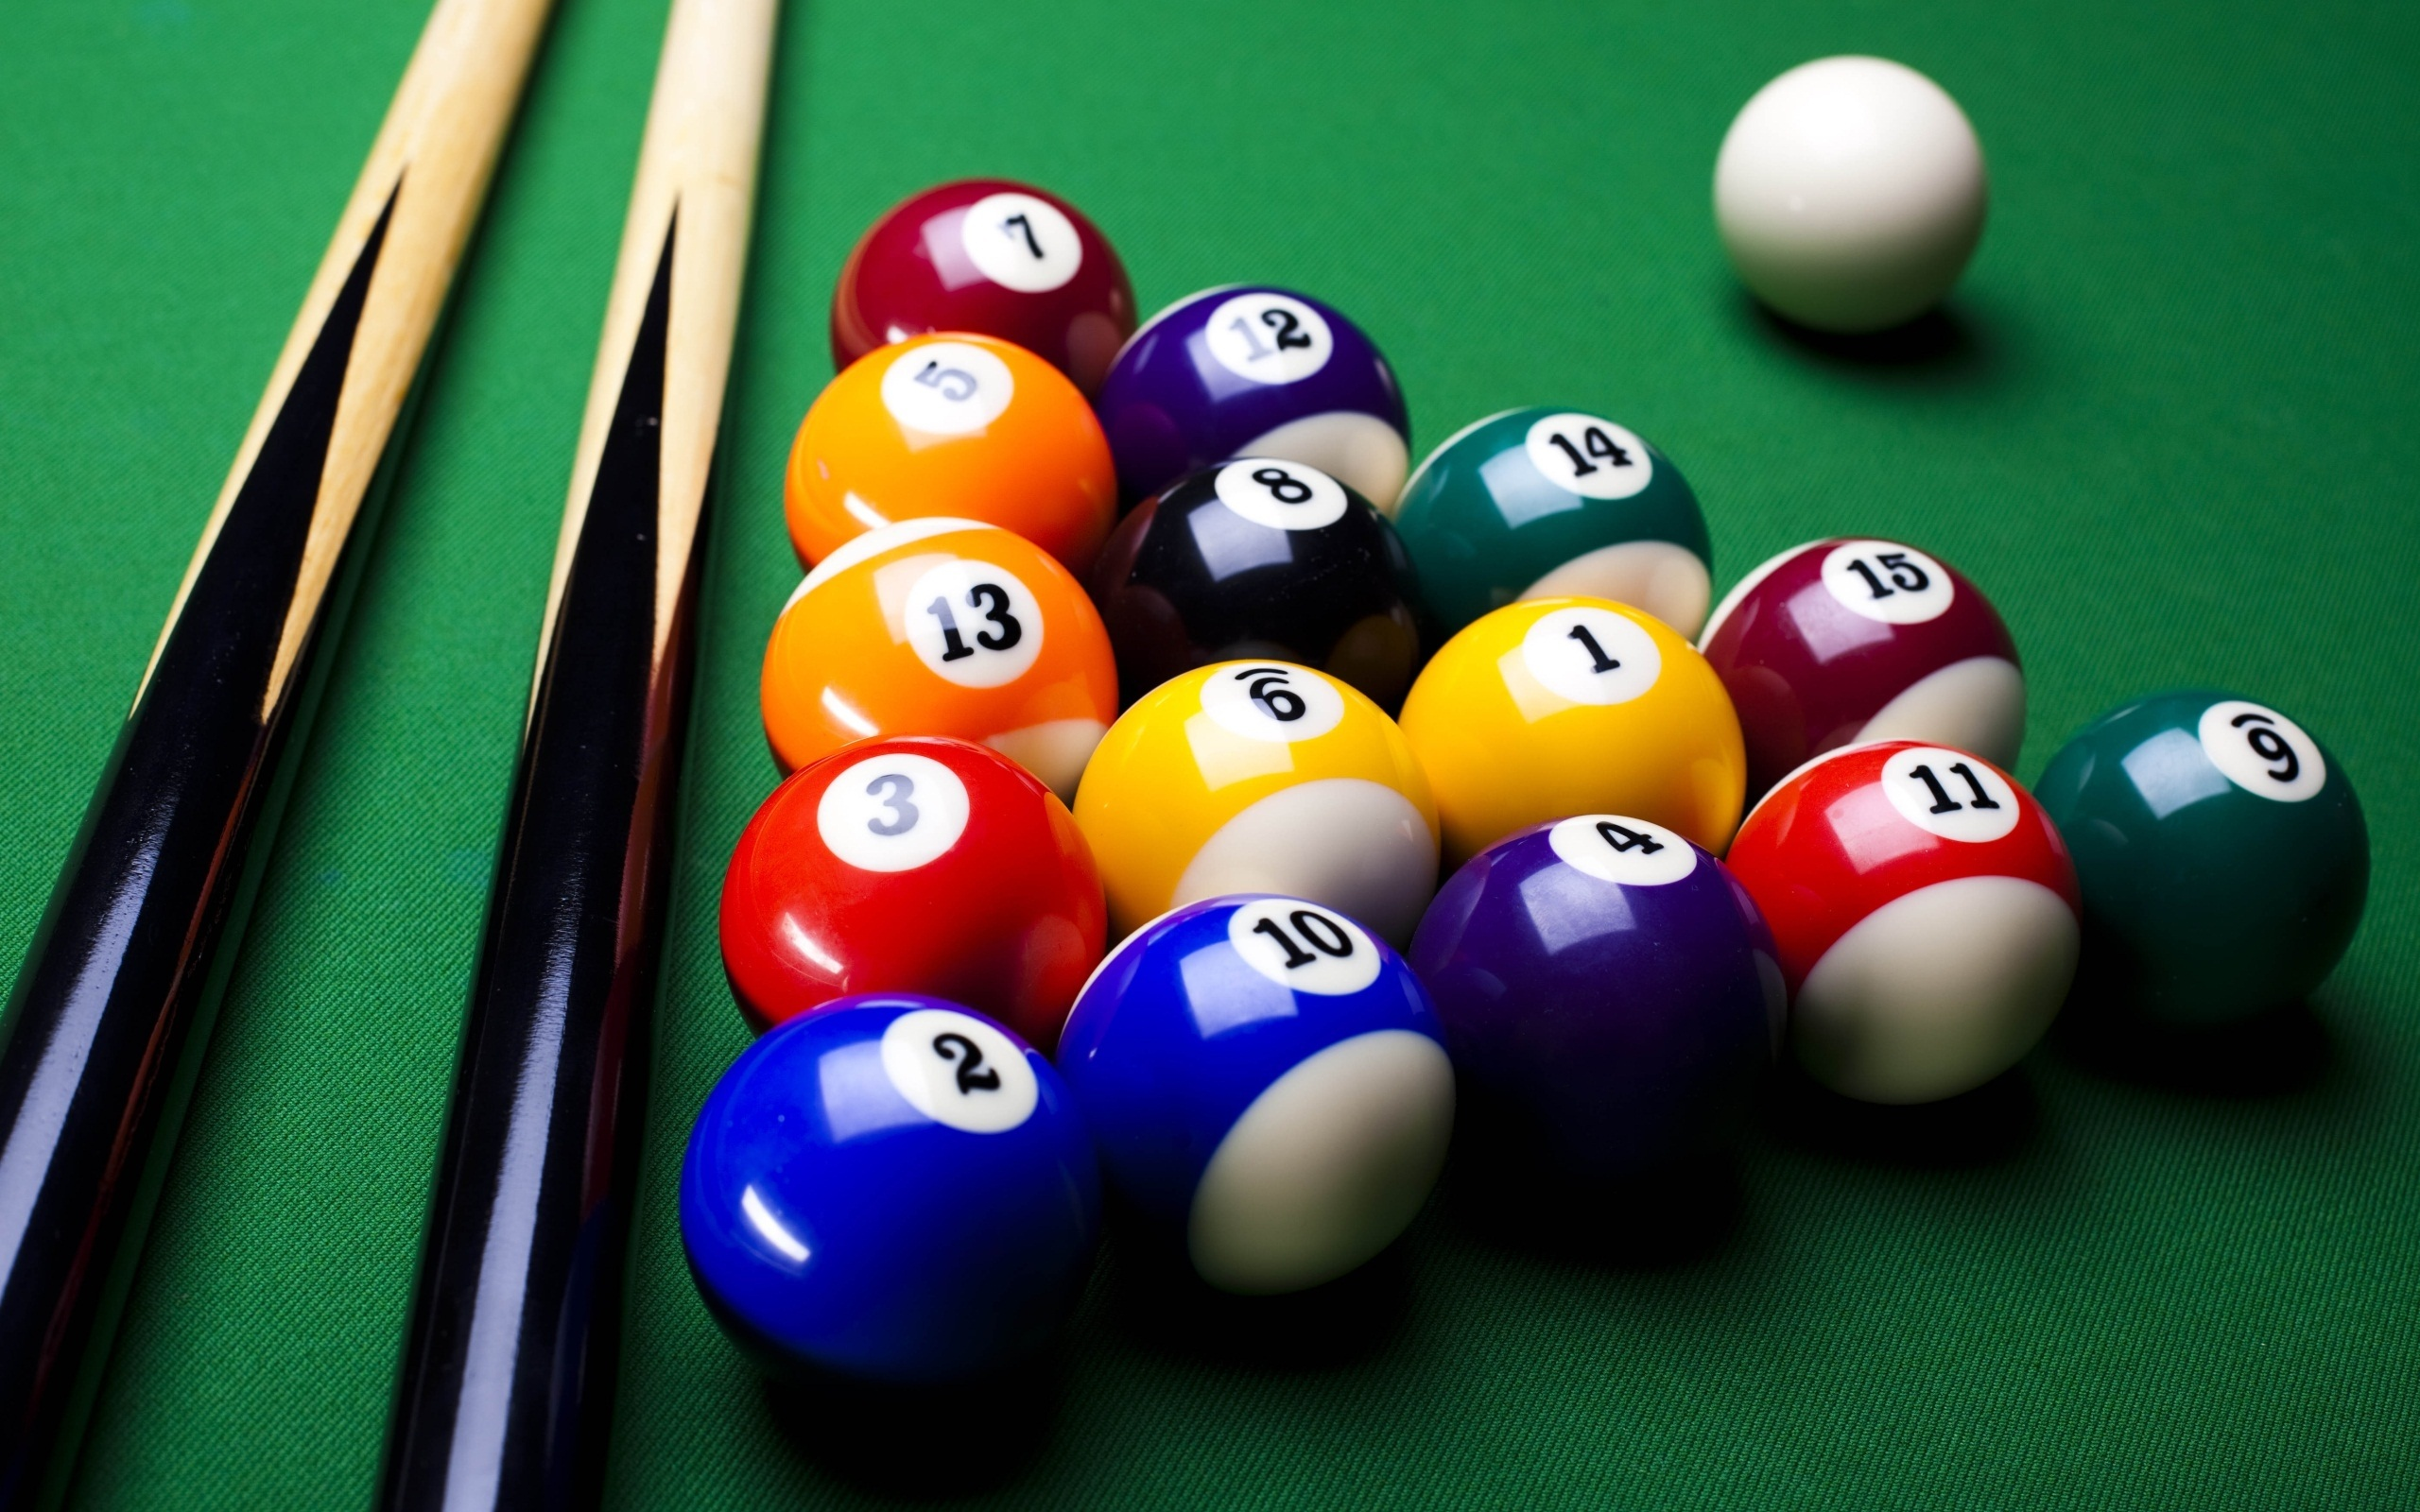 Billiards Wallpapers HD Backgrounds Images Pics Photos 2560x1600